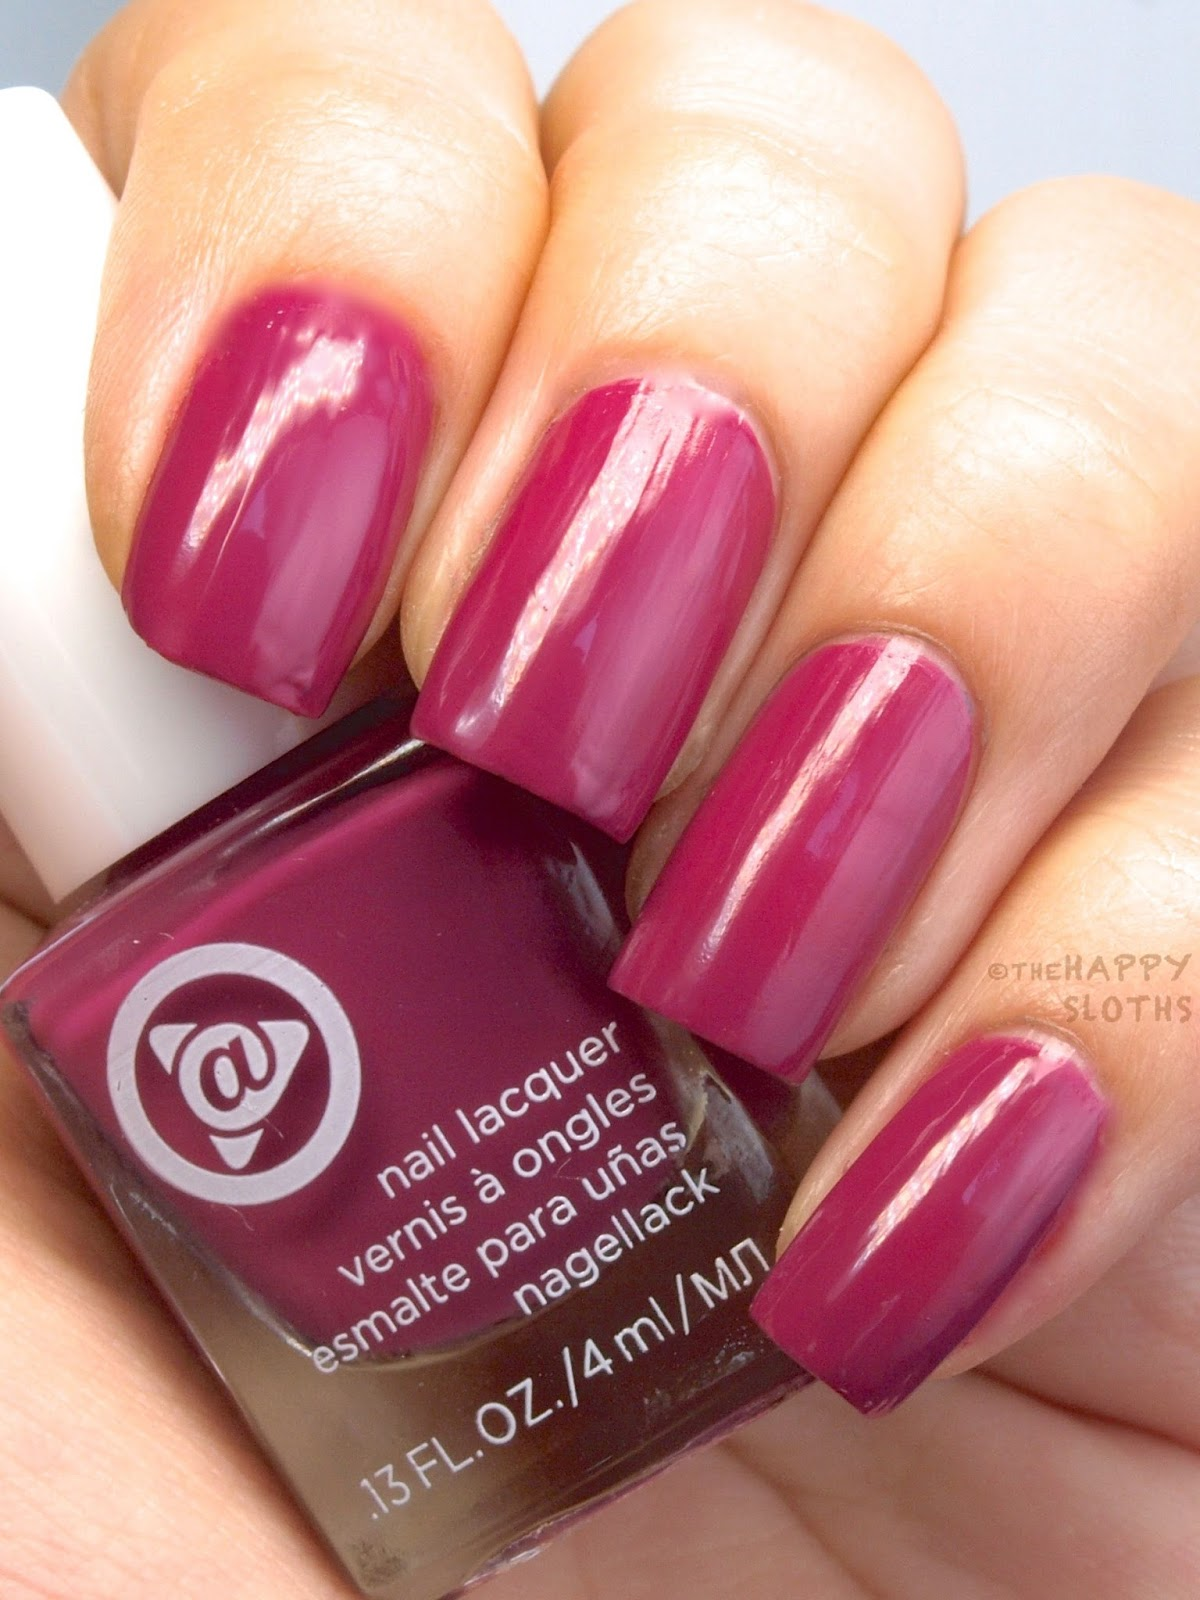 Mary Kay At Play Hail to the Nails Mini Nail Lacquer Trio: Review and Swatches Pink Hottie